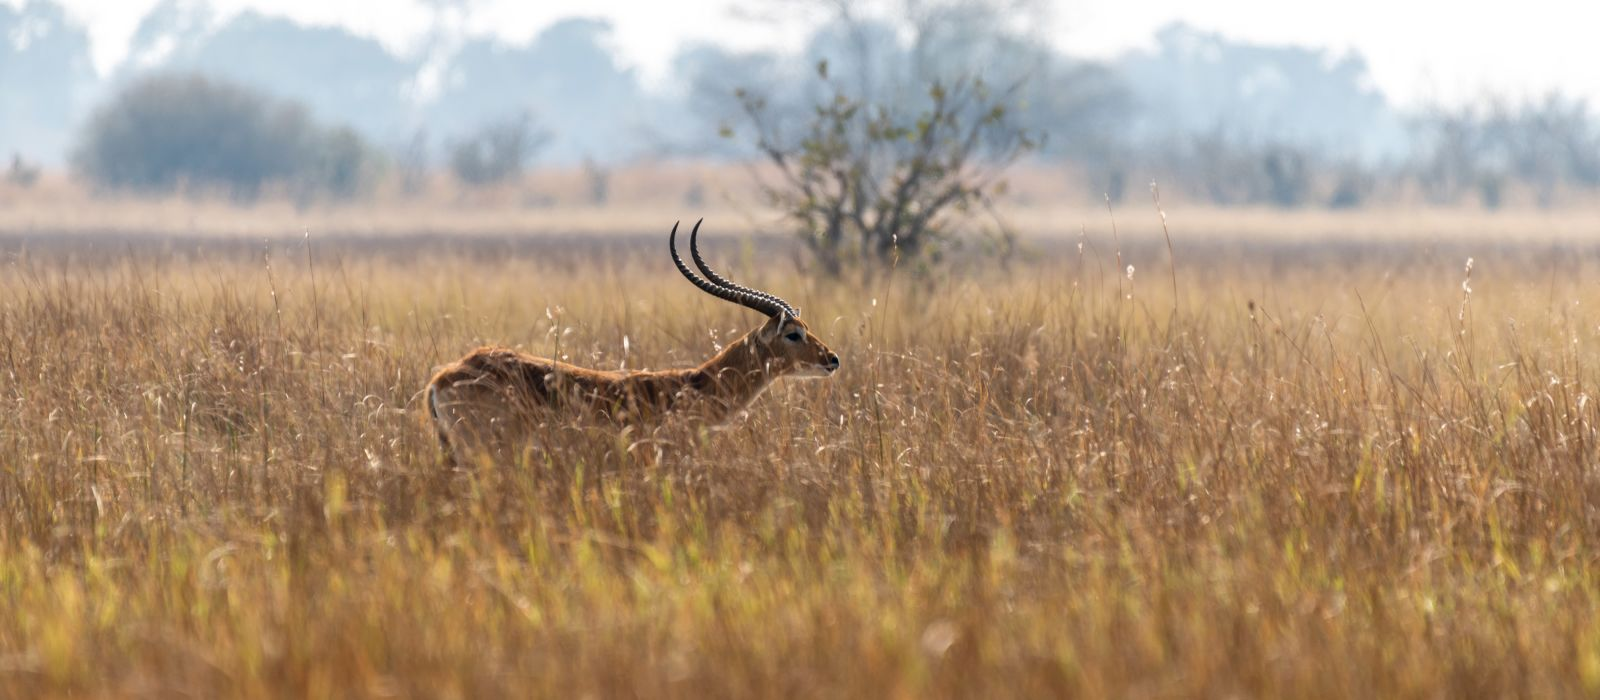 Impalas on eating between yellow grass in moremi game reserve, Botswana, Africa